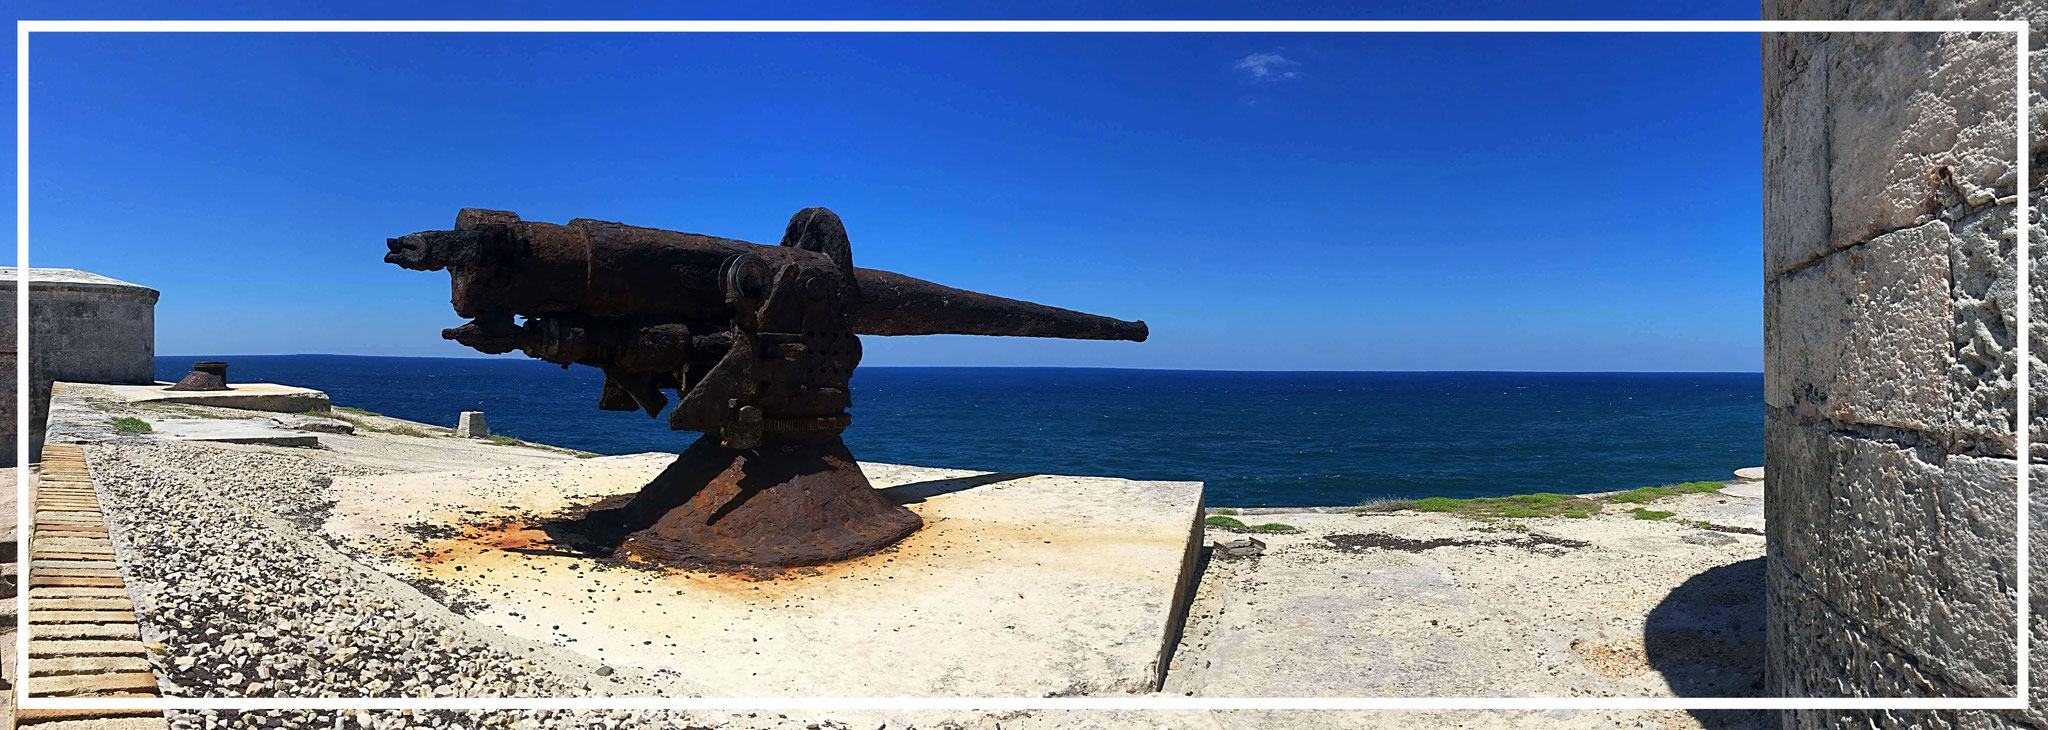 The complex is equipped with twelve large cannons bearing the names of the twelve apostles